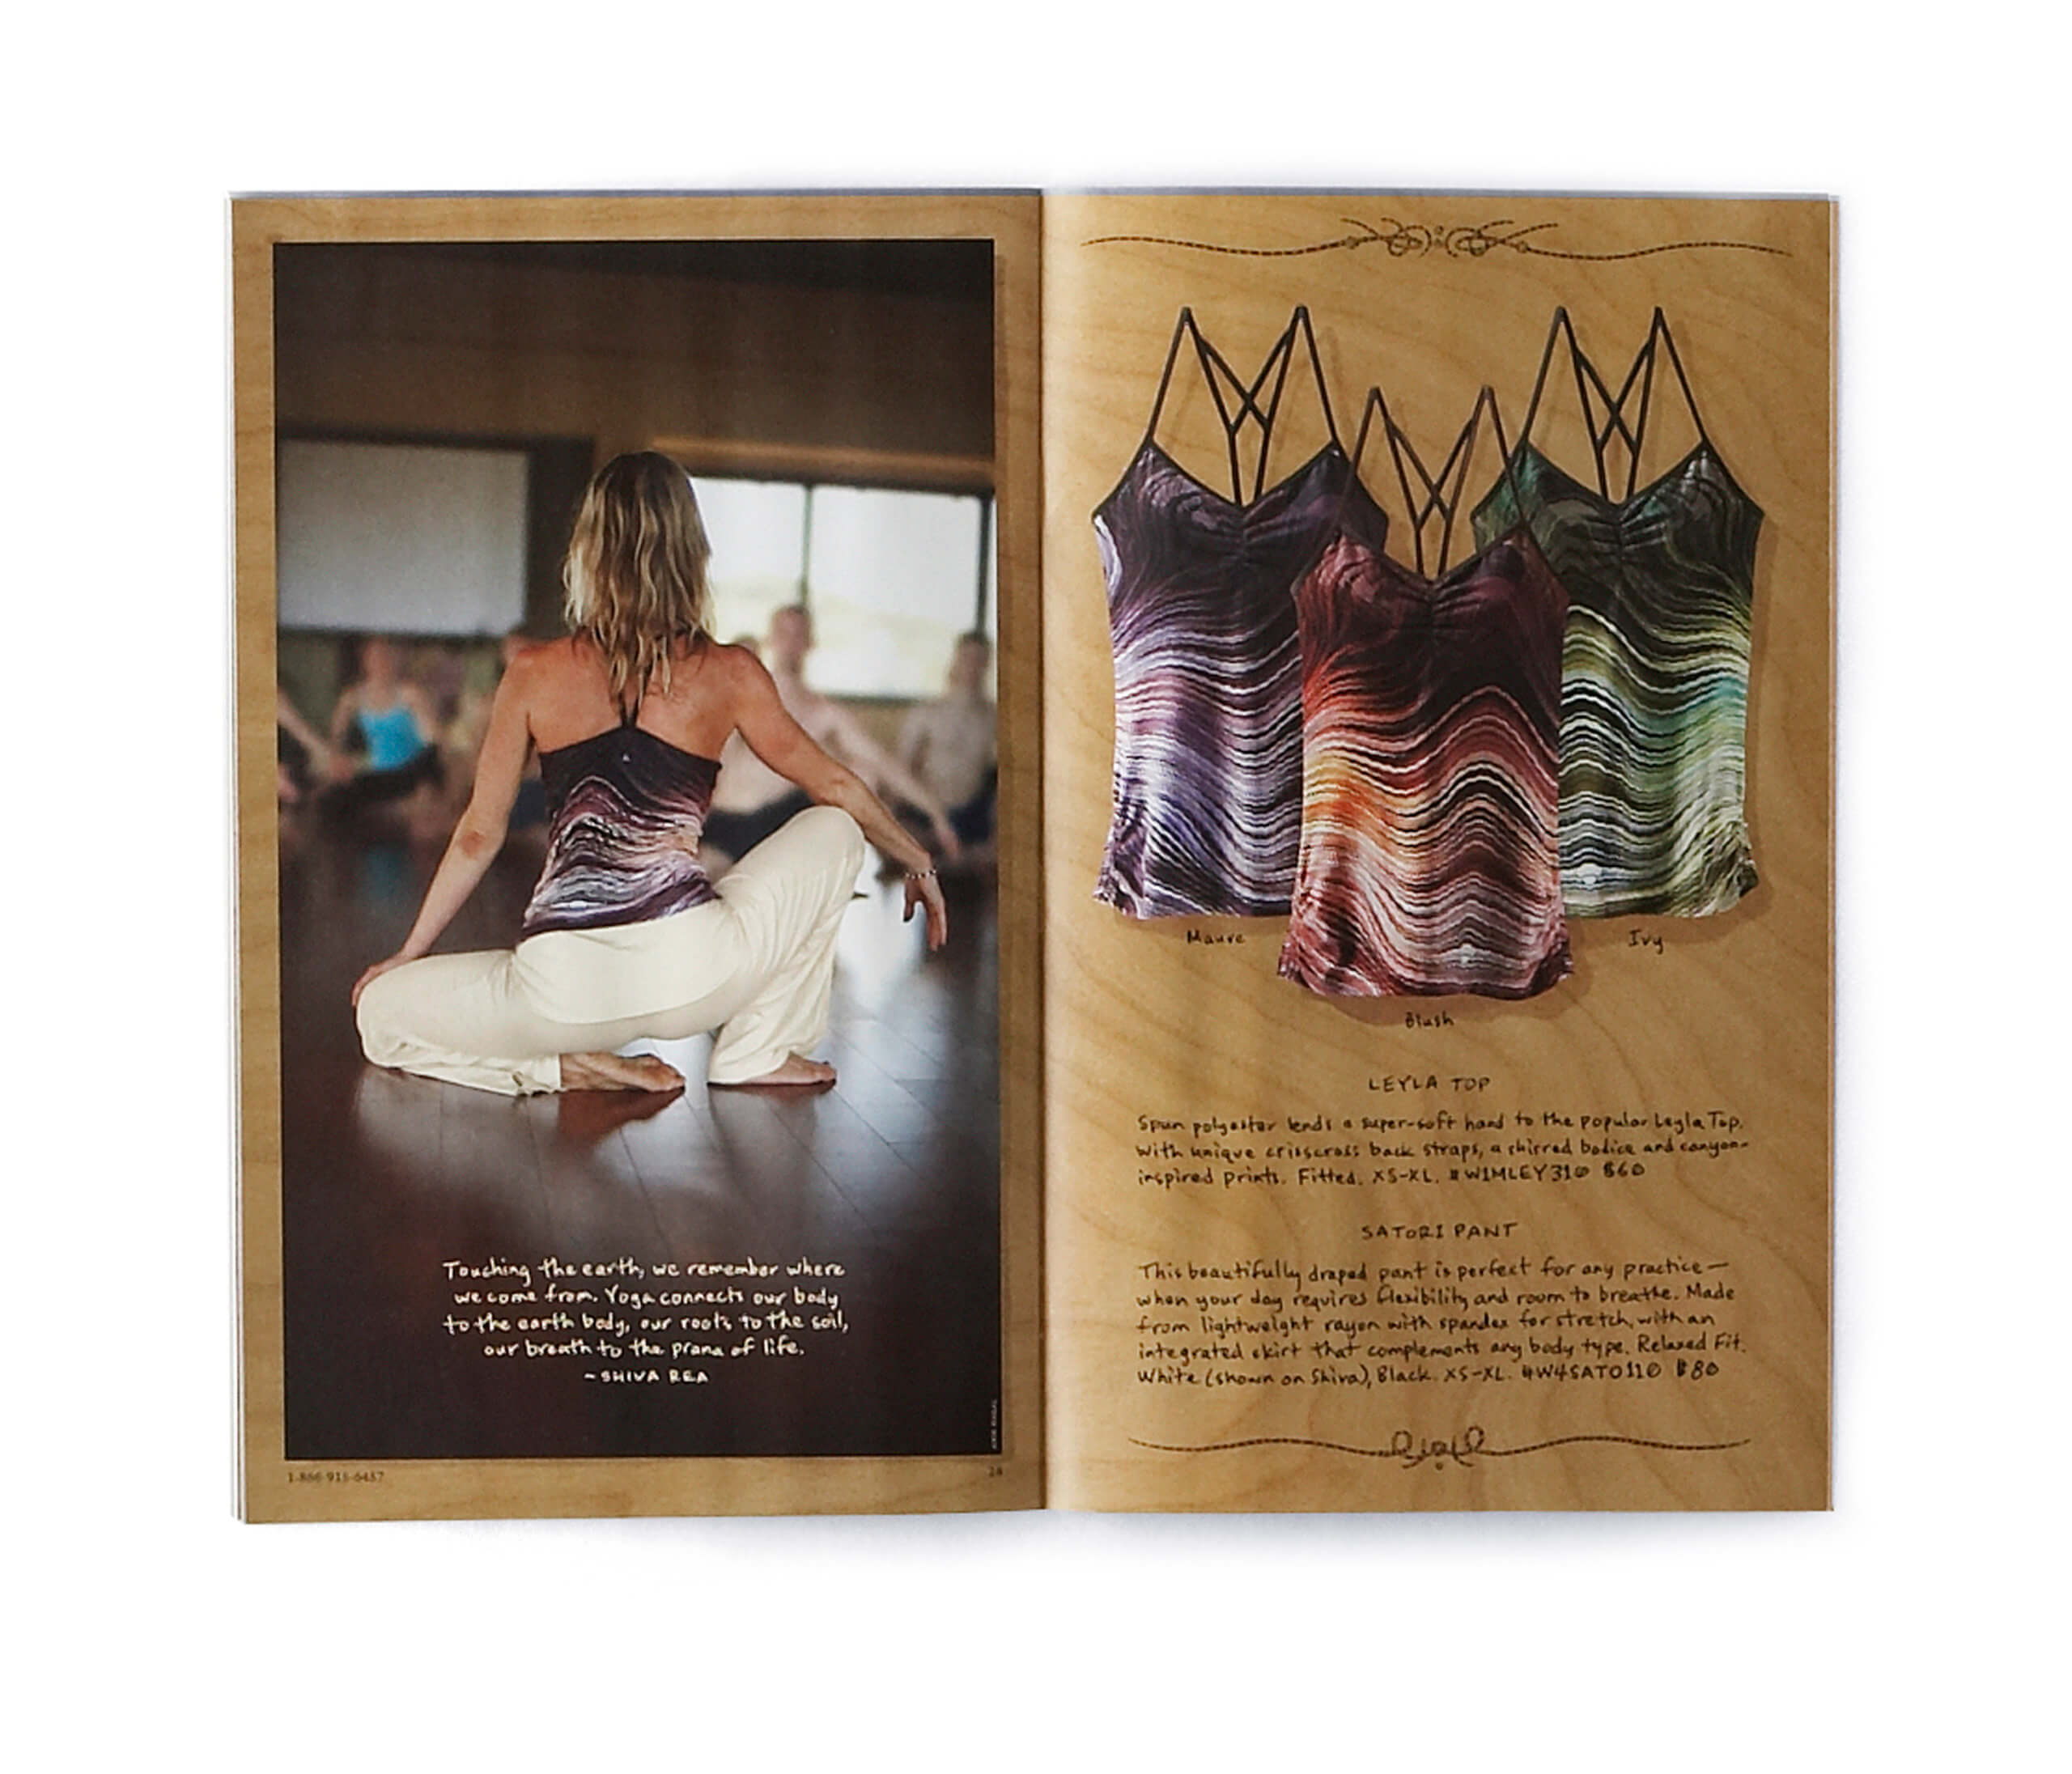 Open catalog showing yogi and 3 yoga tops on wooden background